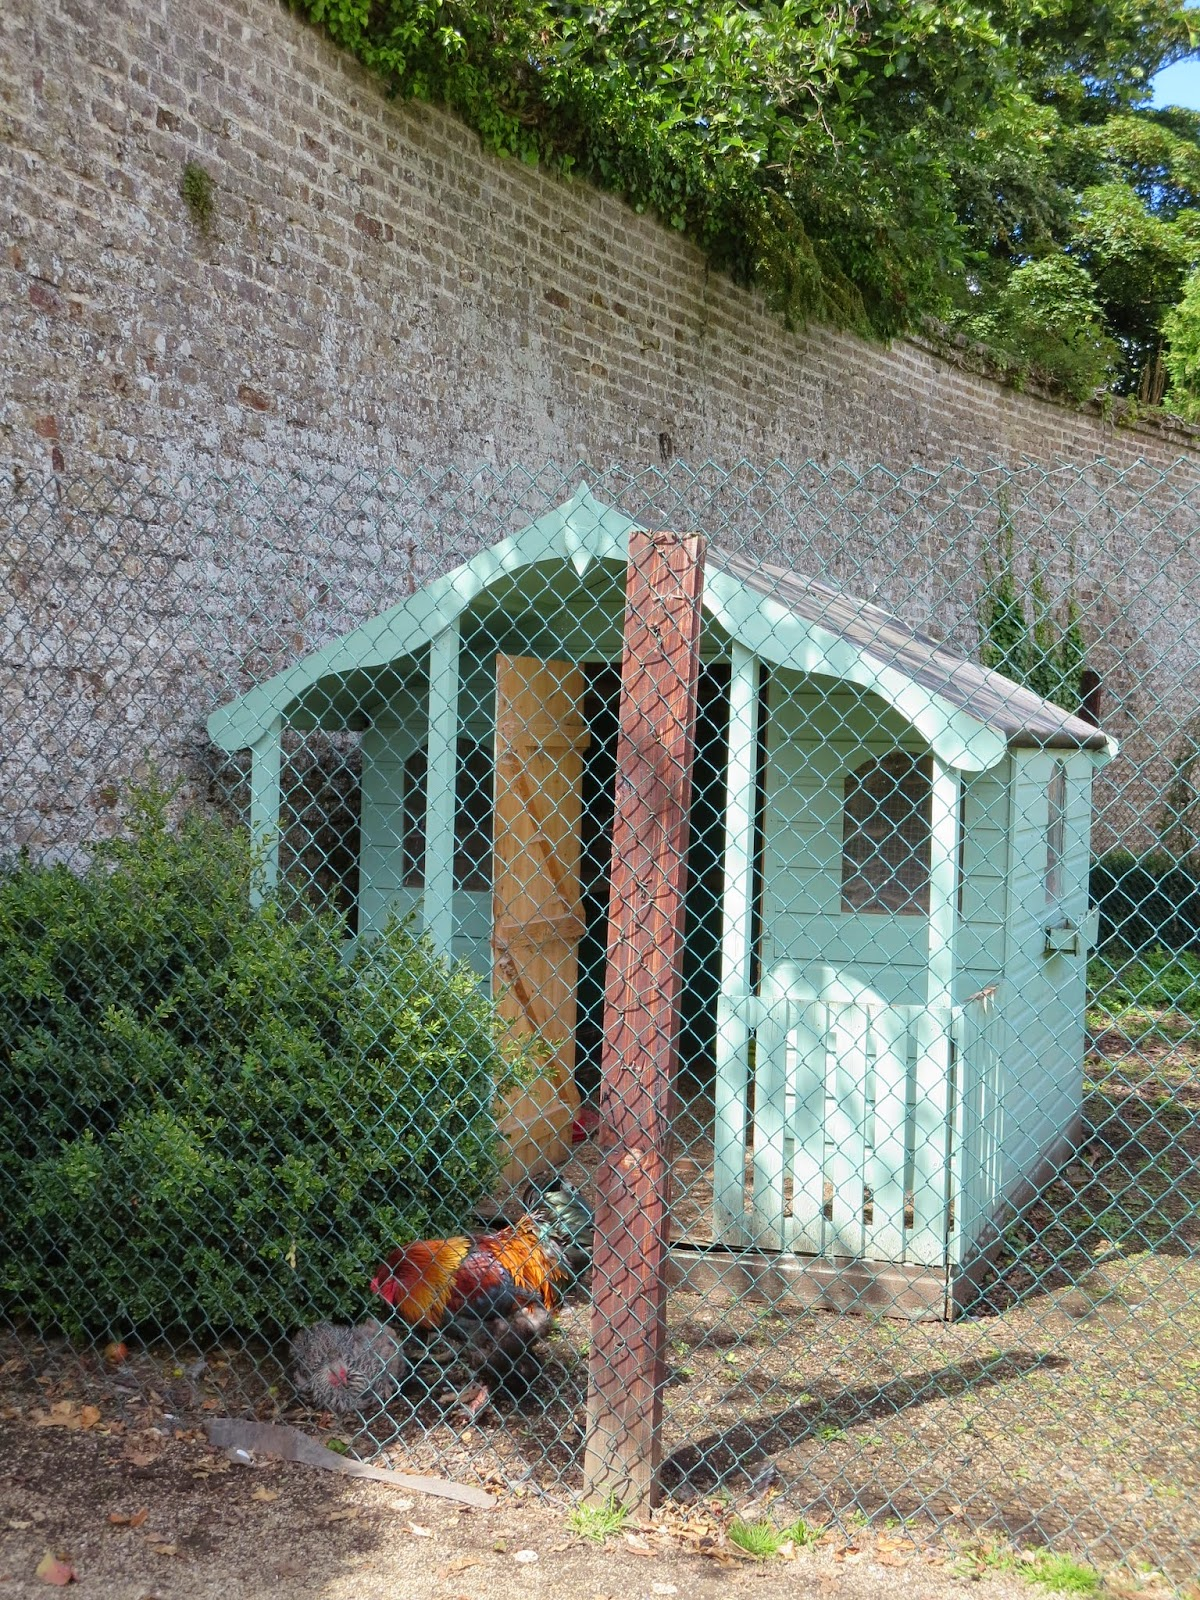 Pastel chicken coop and rooster in the walled garden at Marlay Park